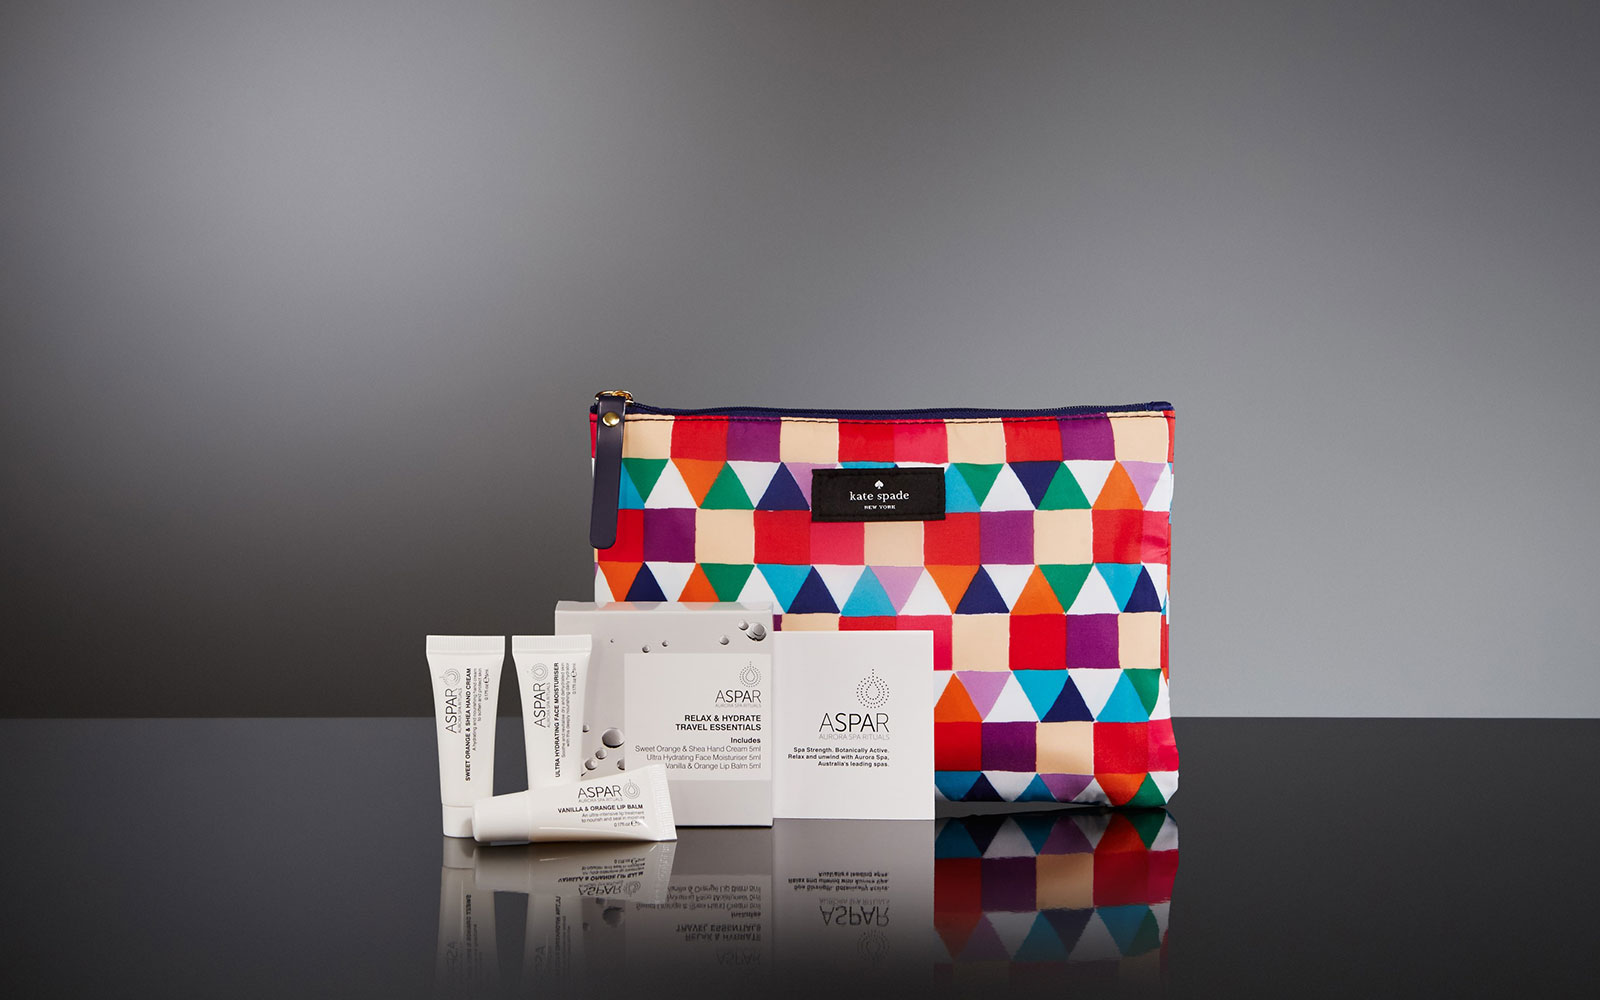 Coolest Airline Amenity Kits: Qantas - Business Class Jack and Kate Spade Amenity Kits